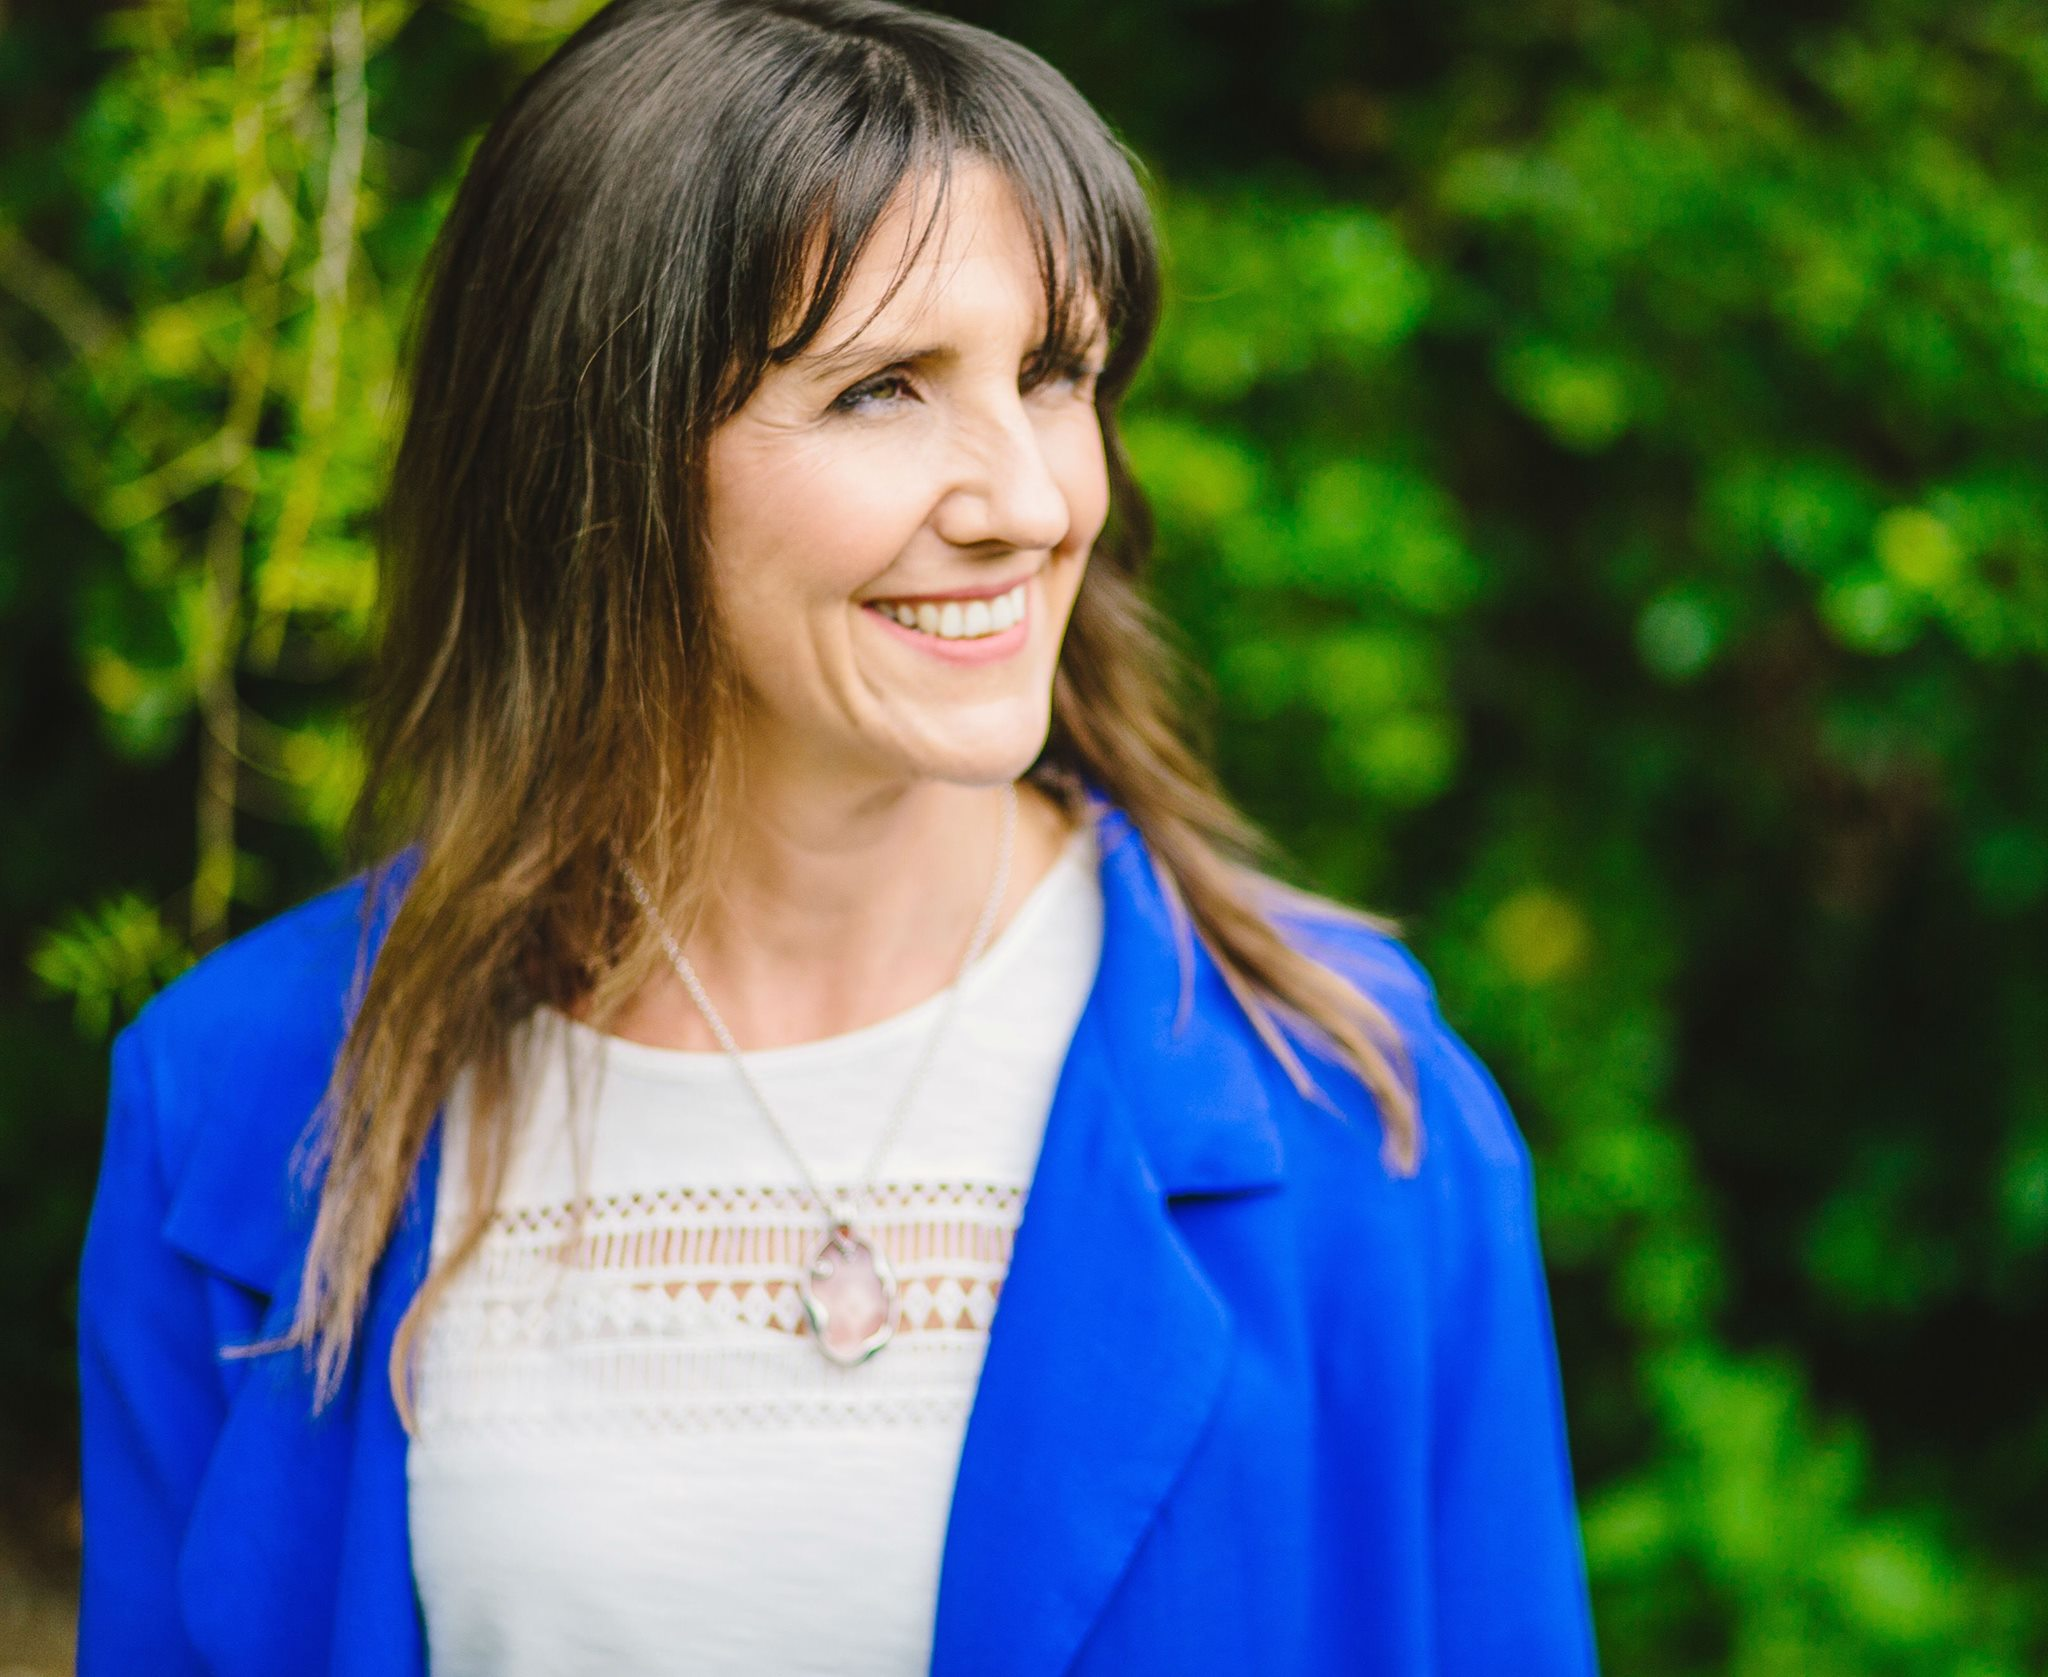 Why Should I Be Everything to Everyone? with Rennee Shaw Why Should I? Podcast for Women